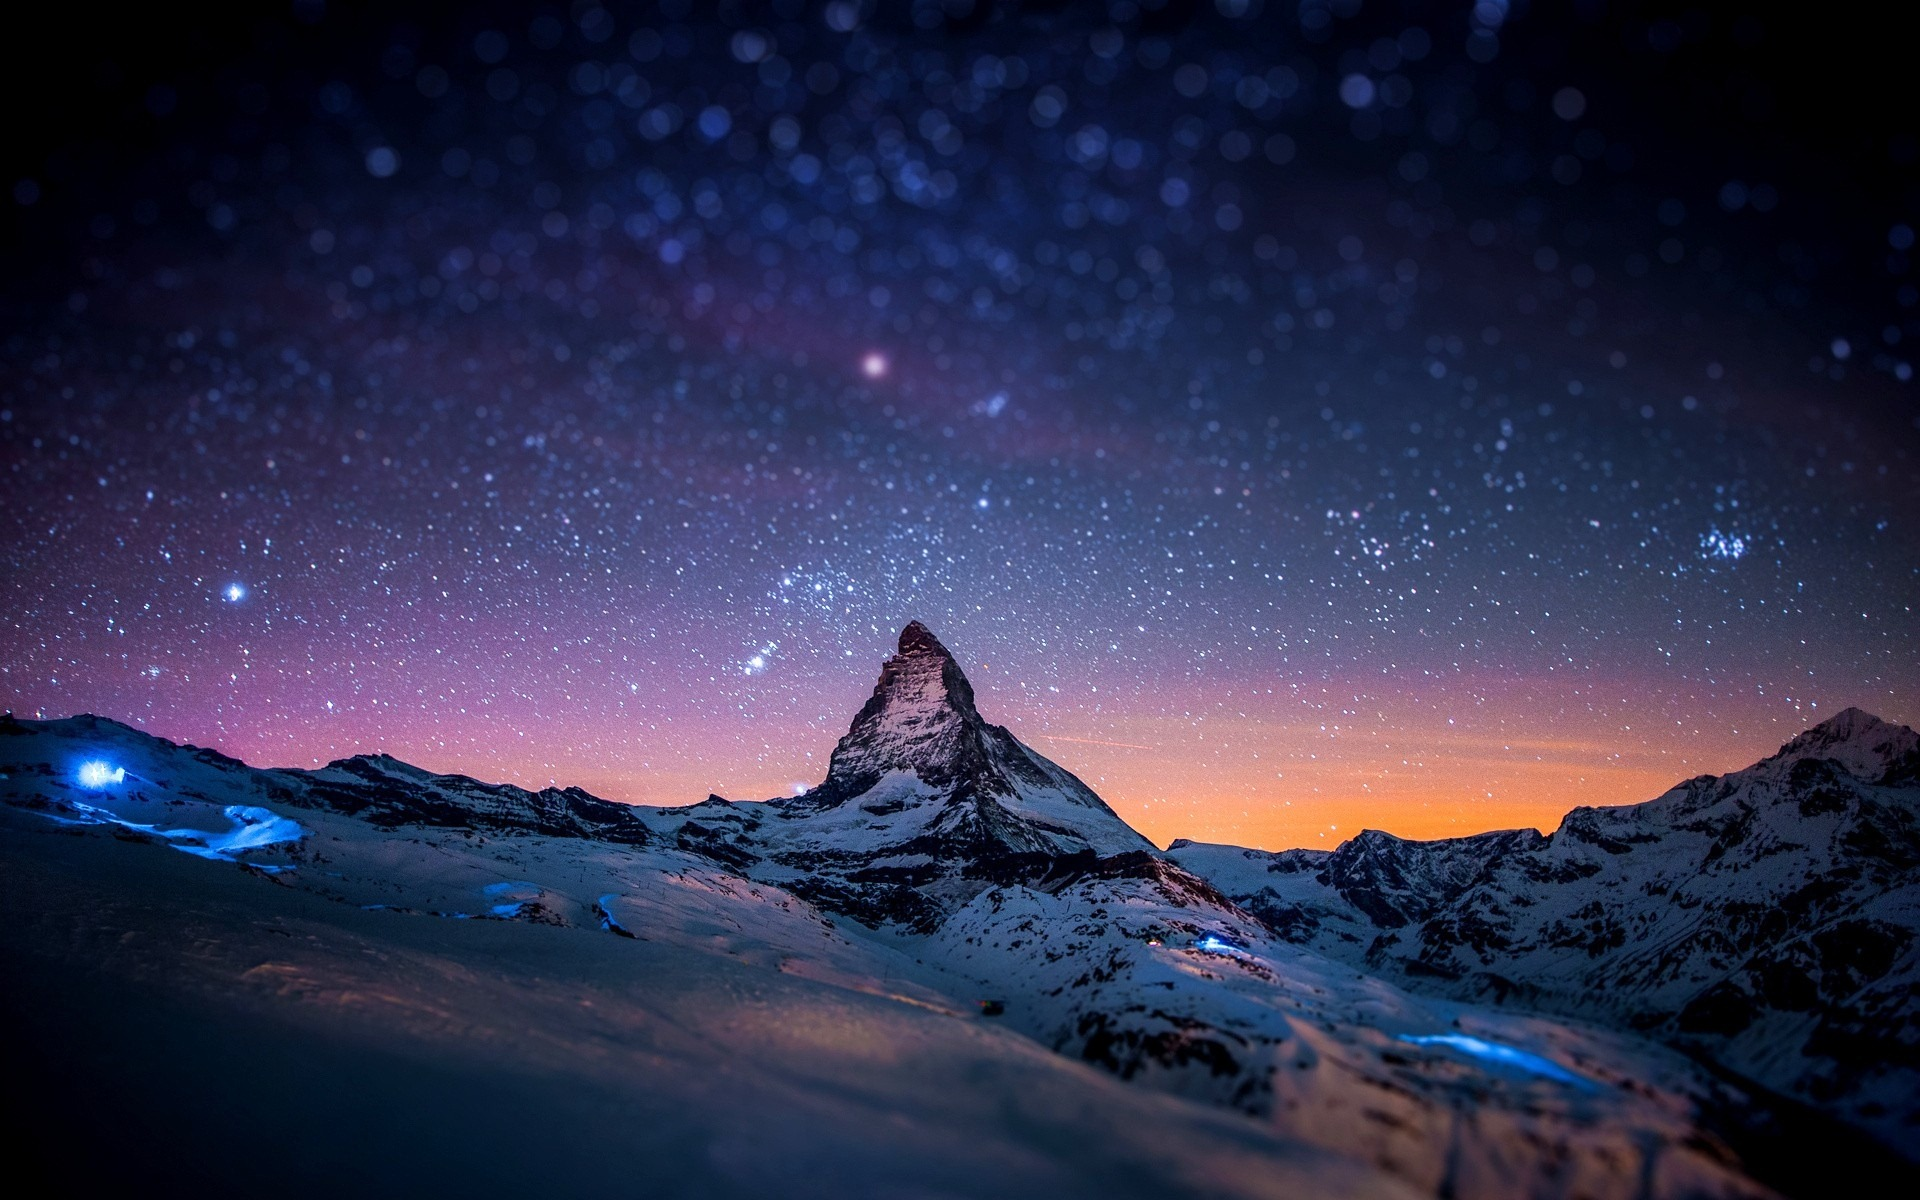 Night Sky over Snowy Mountains 524.02 Kb